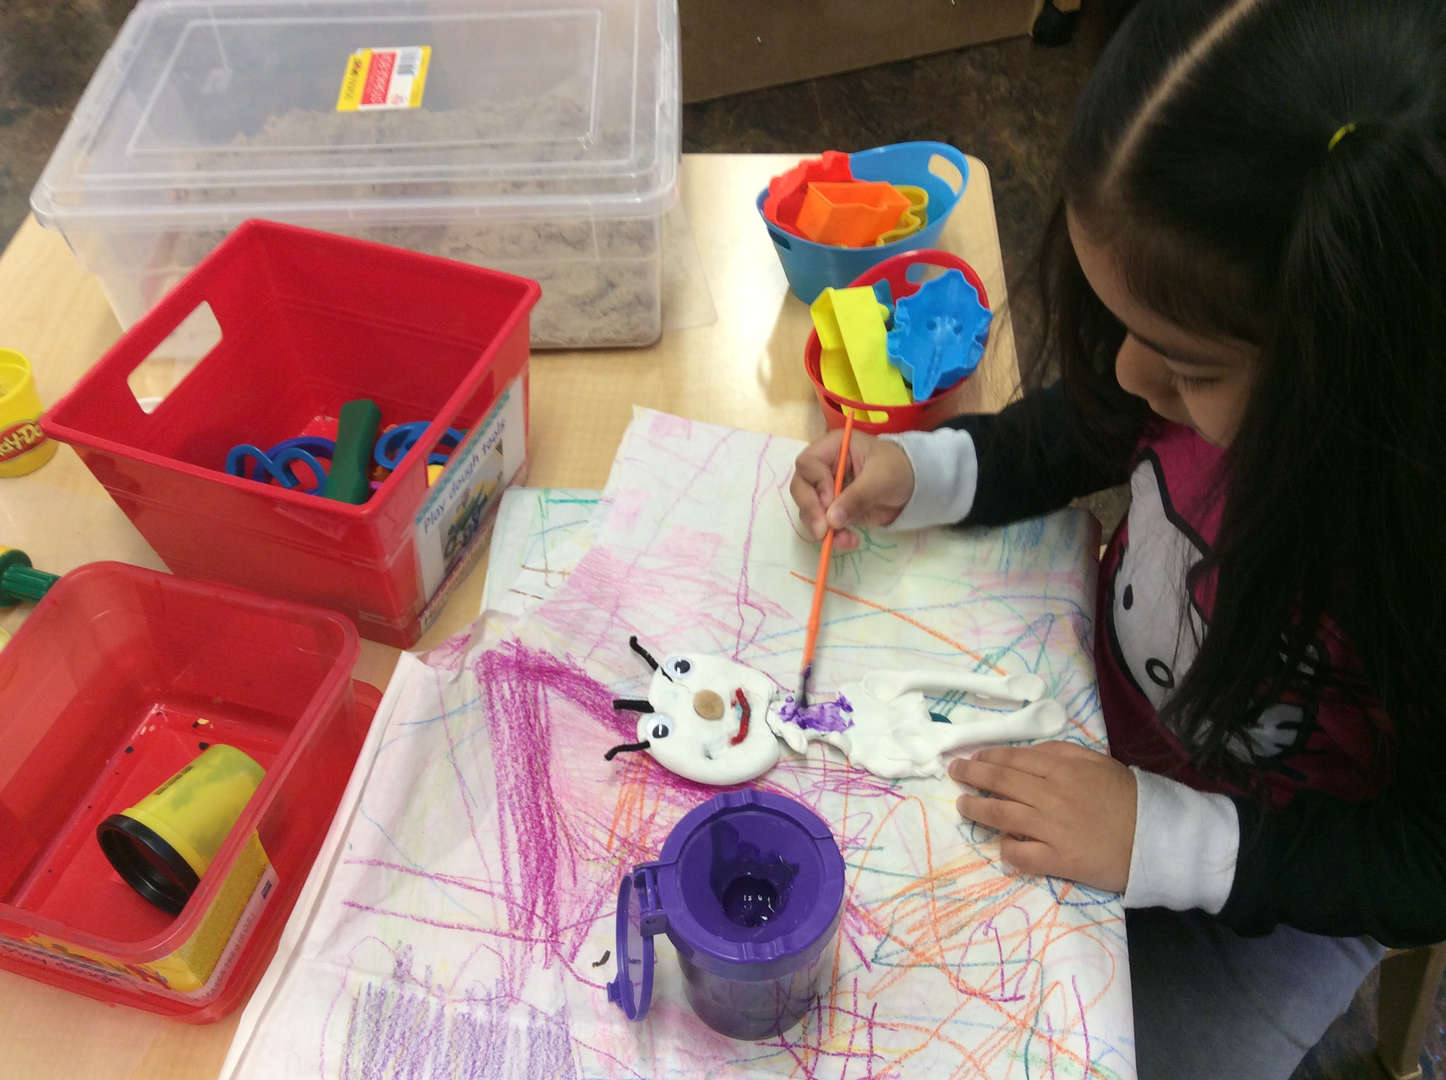 Student painting an arts and crafts project